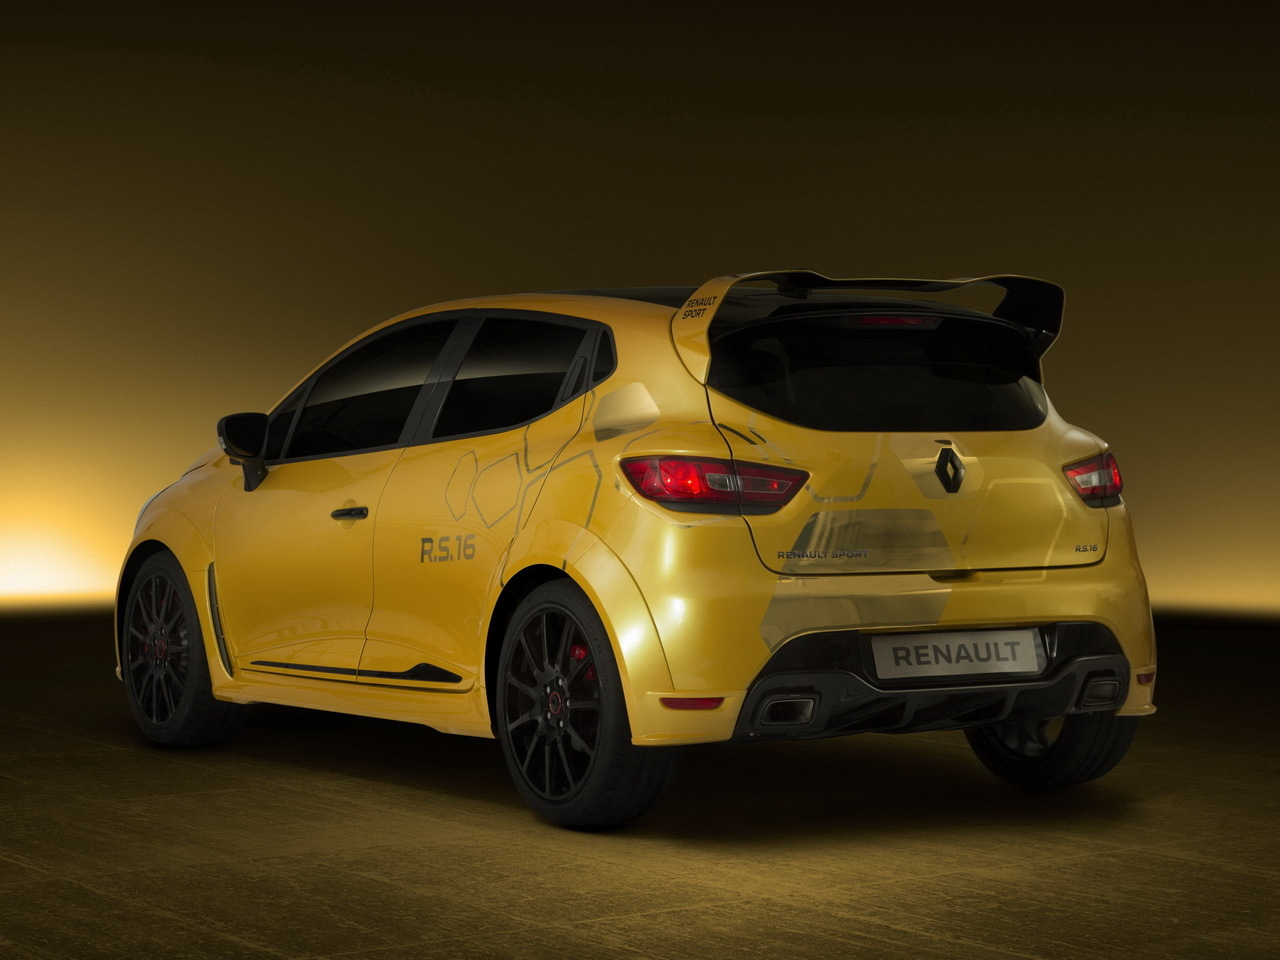 renault clio rs 16 275 ch dans la clio 4 rs photo 2 l 39 argus. Black Bedroom Furniture Sets. Home Design Ideas